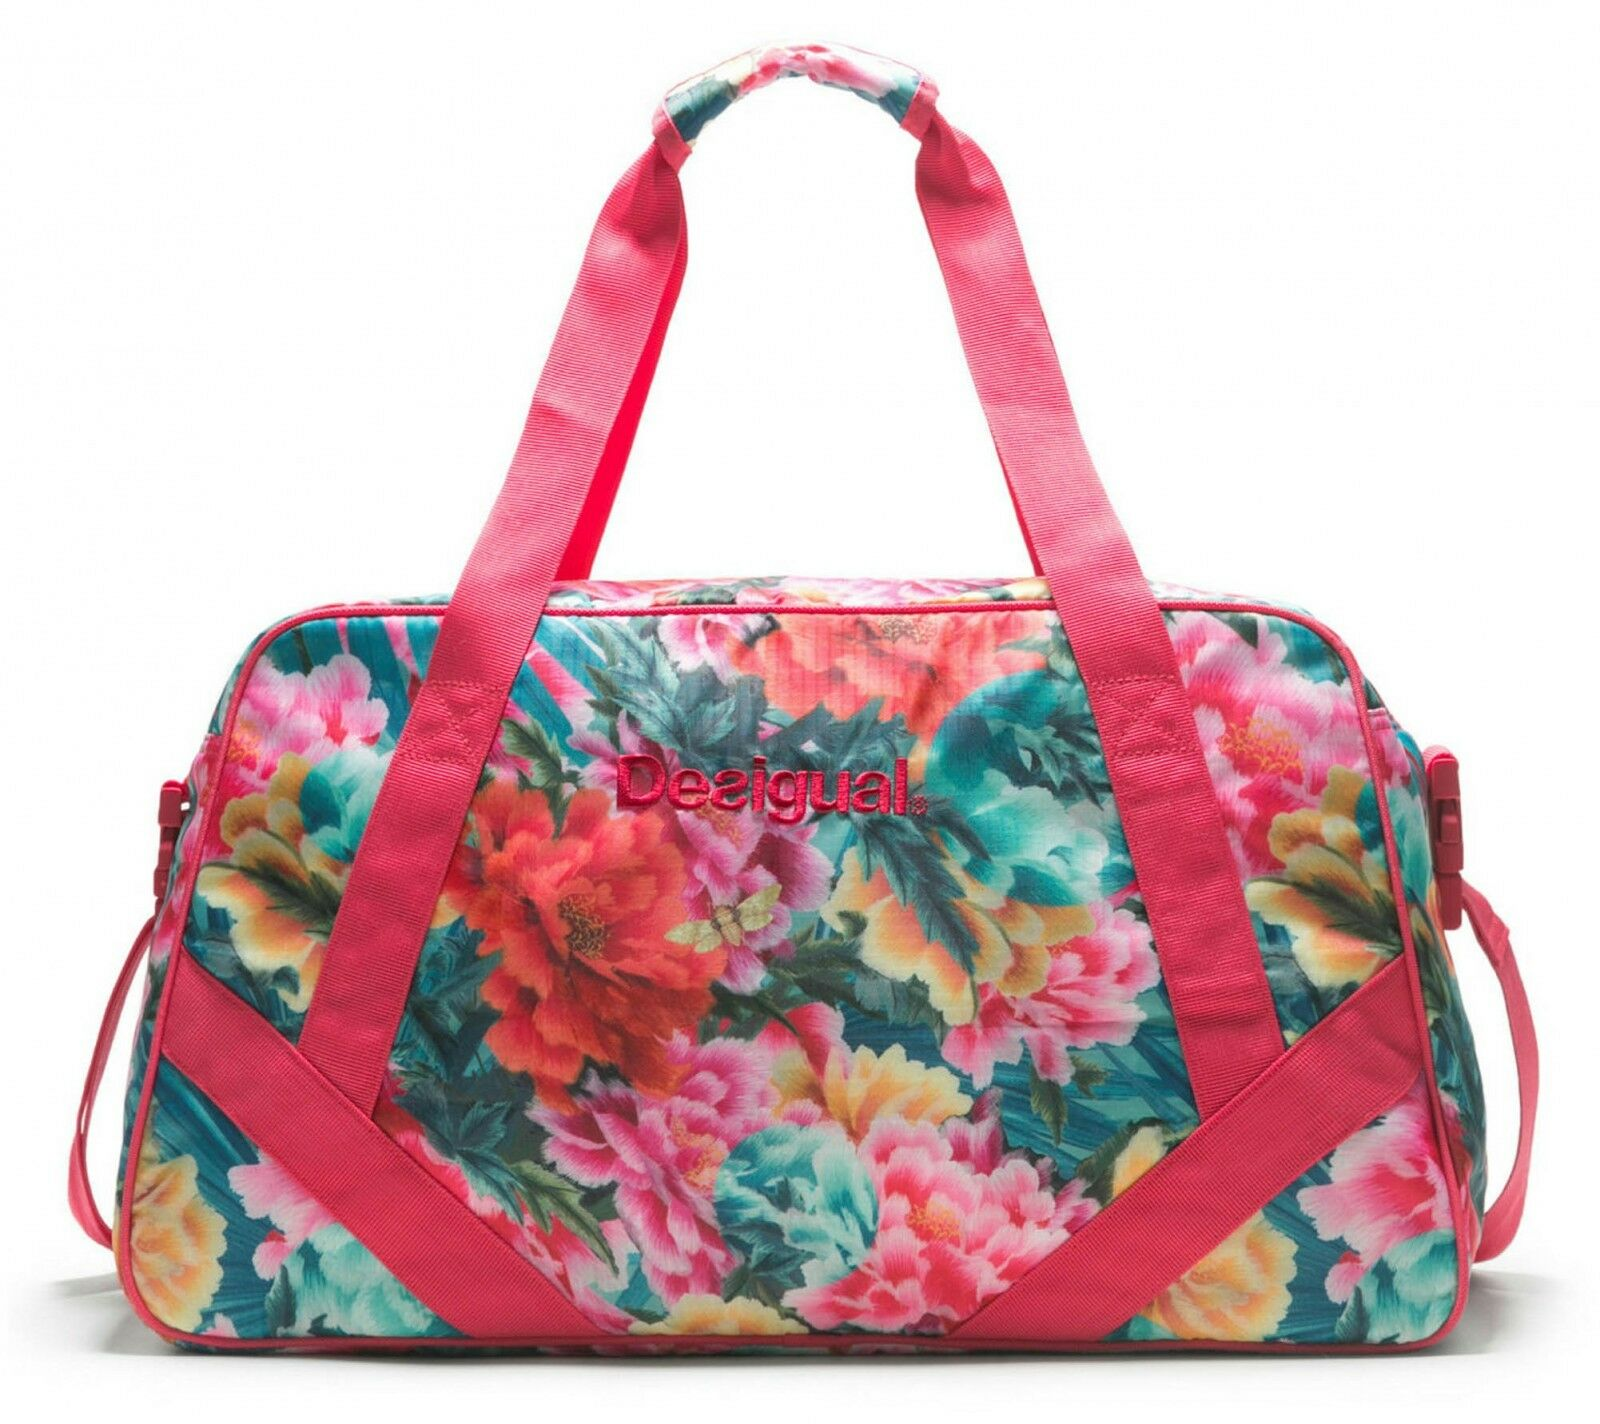 Desigual  Sac De Sport Tropic Carry Shoulder Bag  find your favorite here